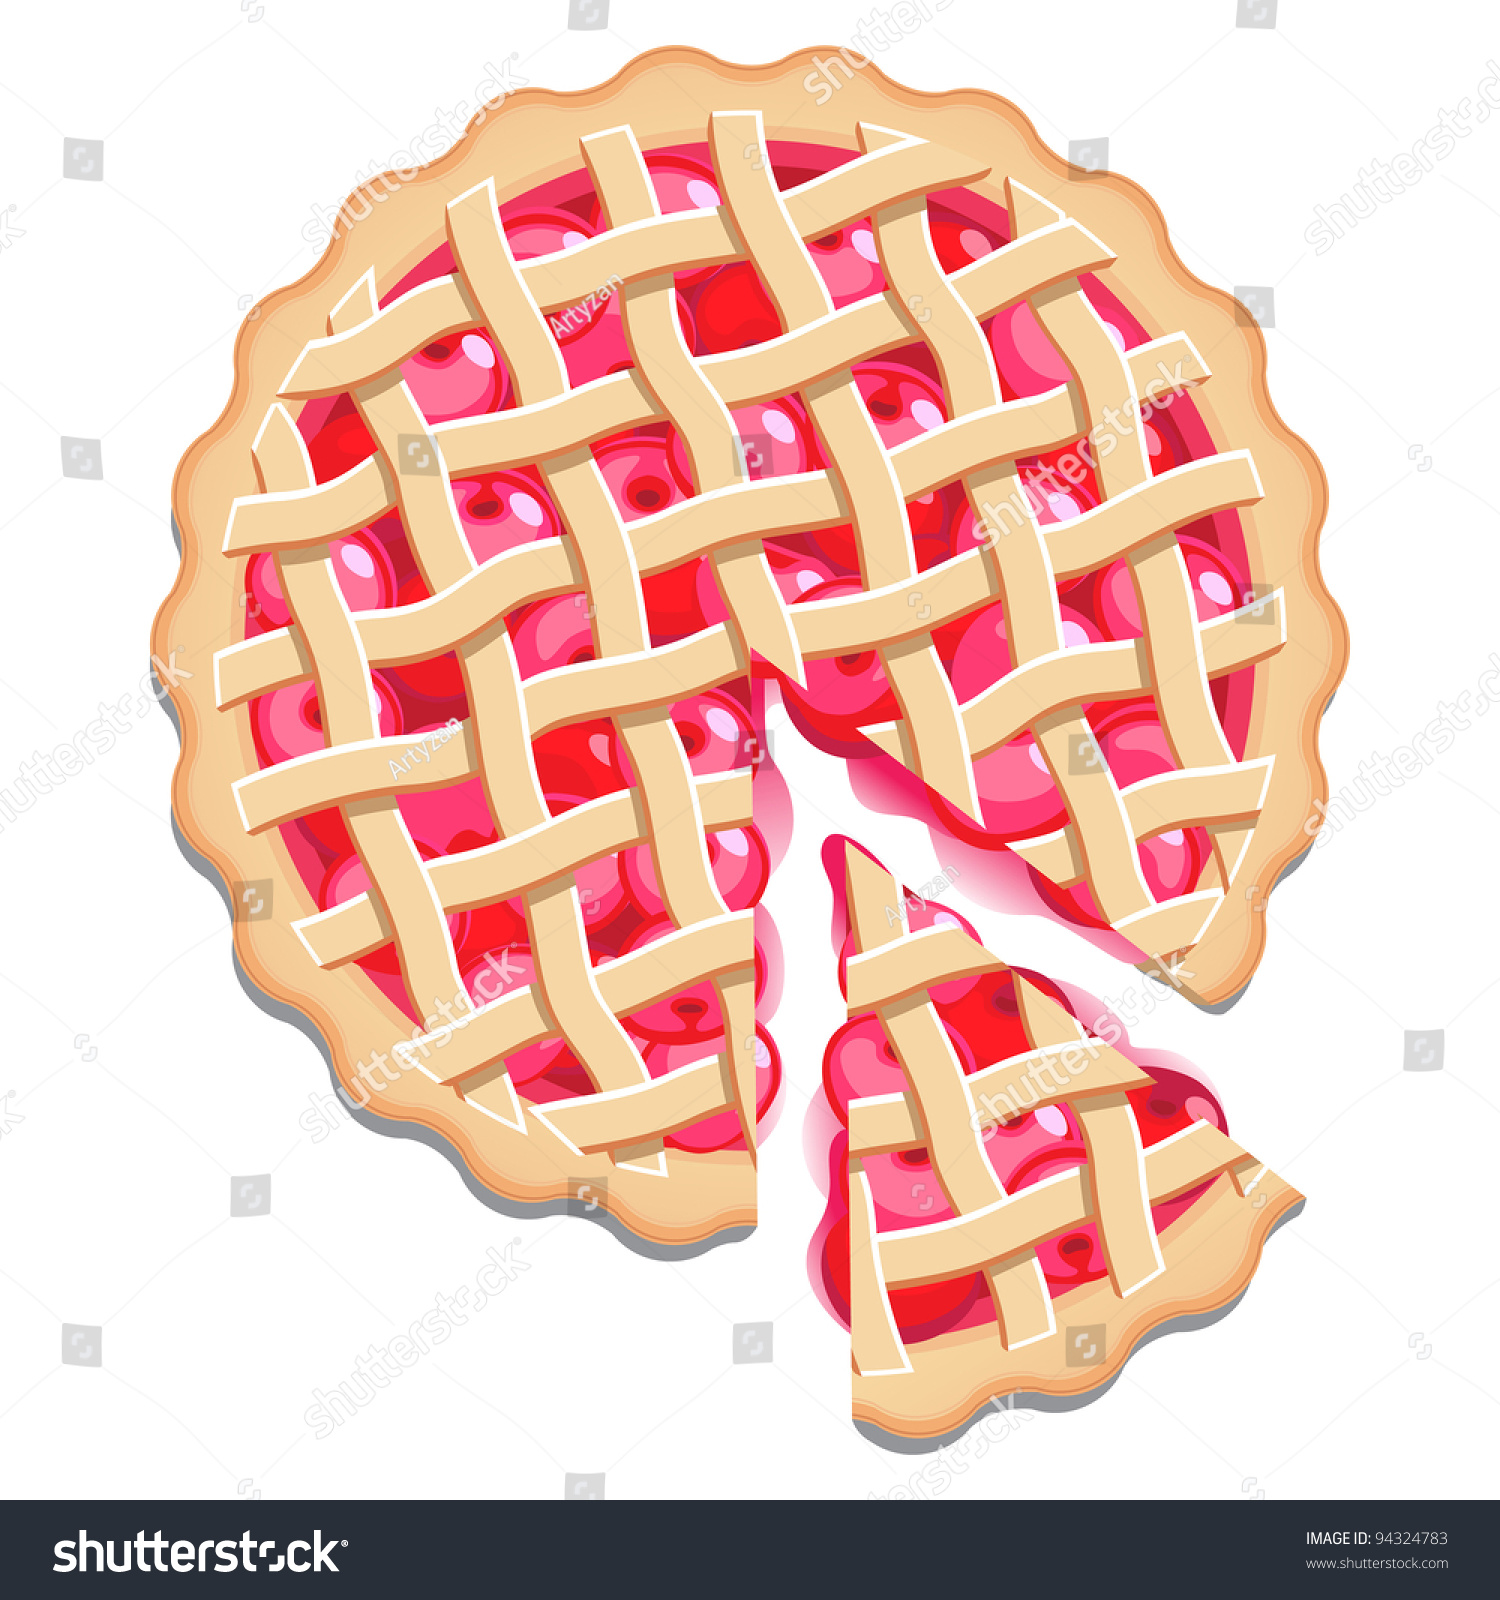 Cake Clipart Top View : Cherry Pie Slice Elevated View Stock Vector 94324783 ...